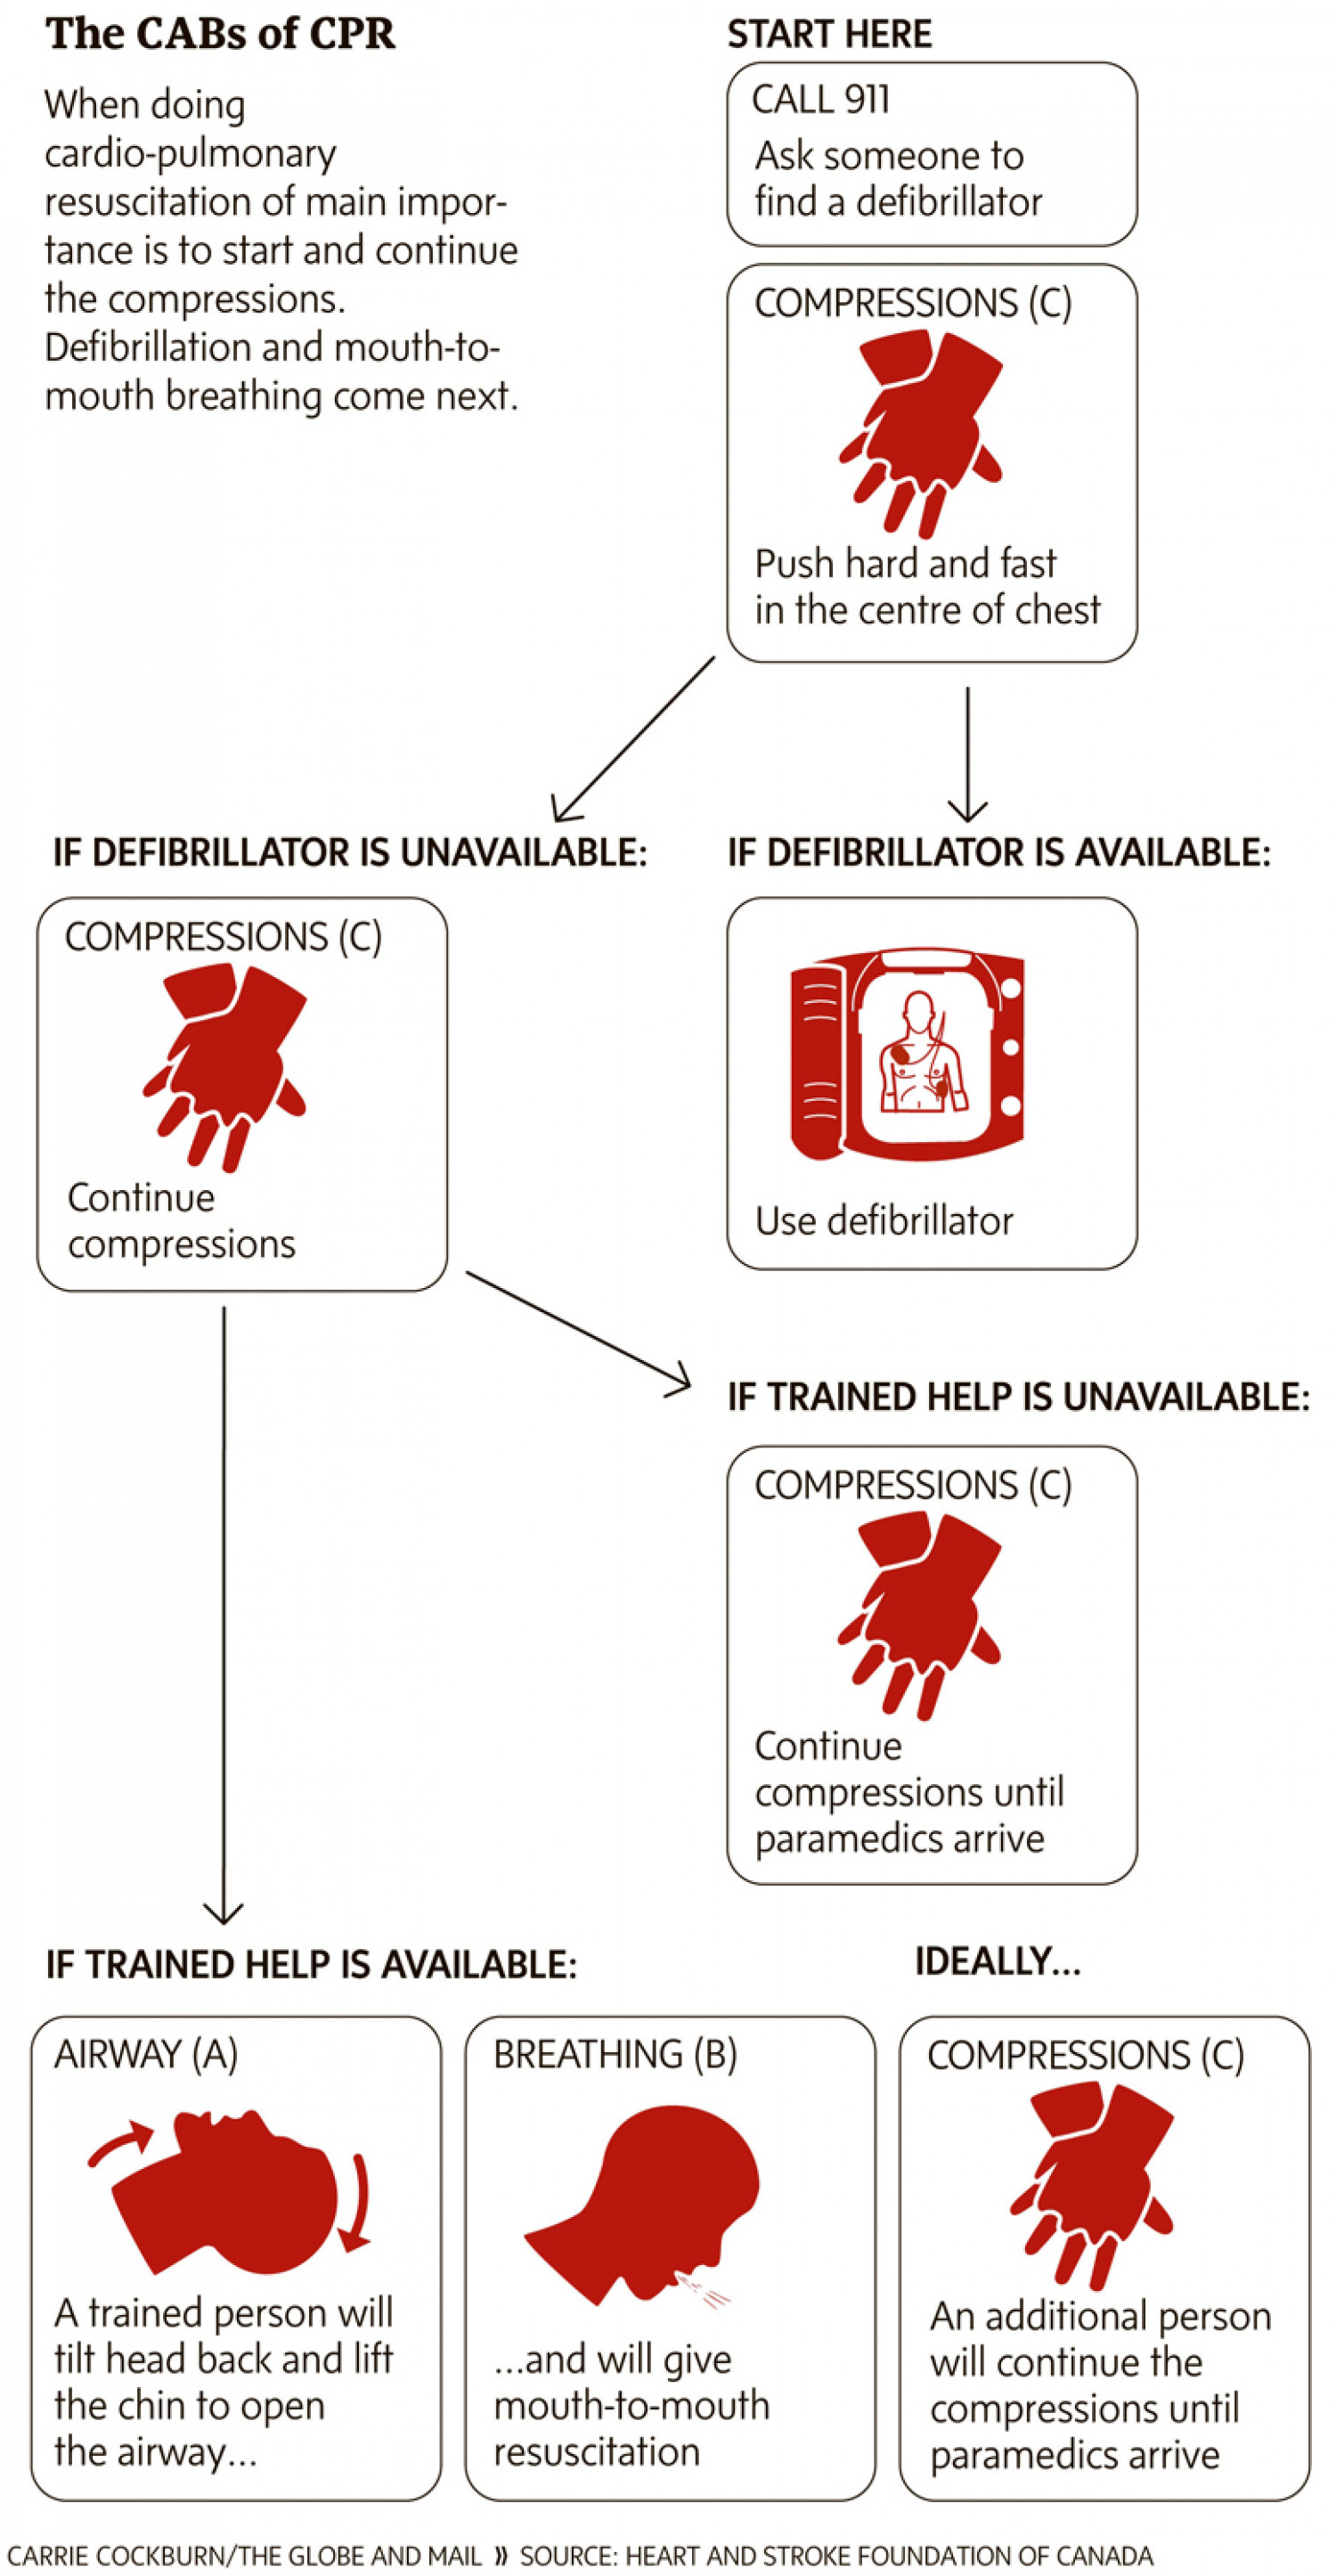 The CAB's of CPR Infographic